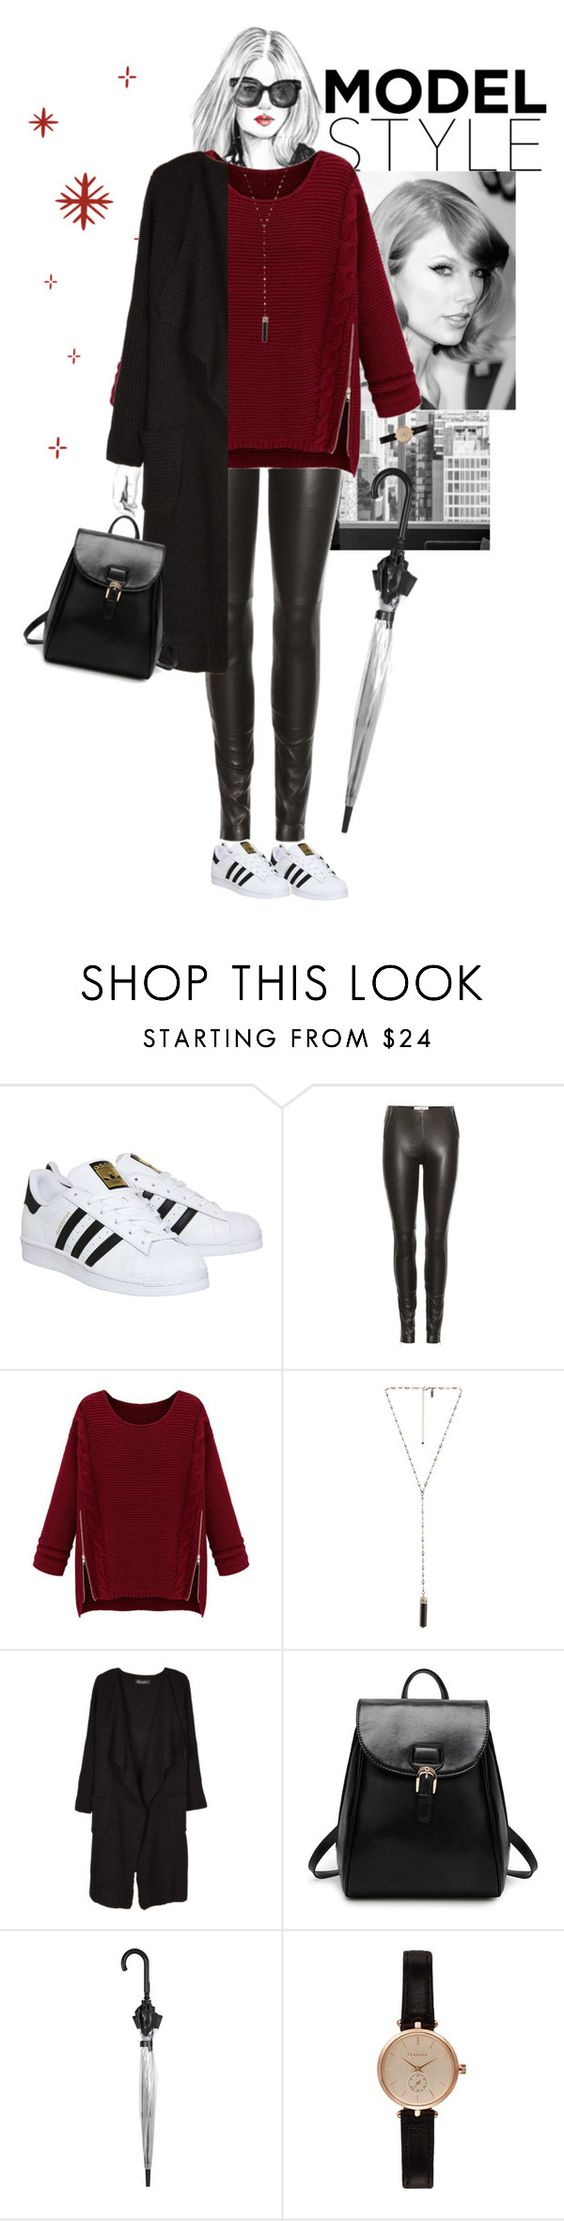 """""""Style #11"""" by blueonyx25 ❤ liked on Polyvore featuring moda, adidas, Maison Margiela, WithChic, Natalie B, Relaxfeel, Topshop y Barbour"""